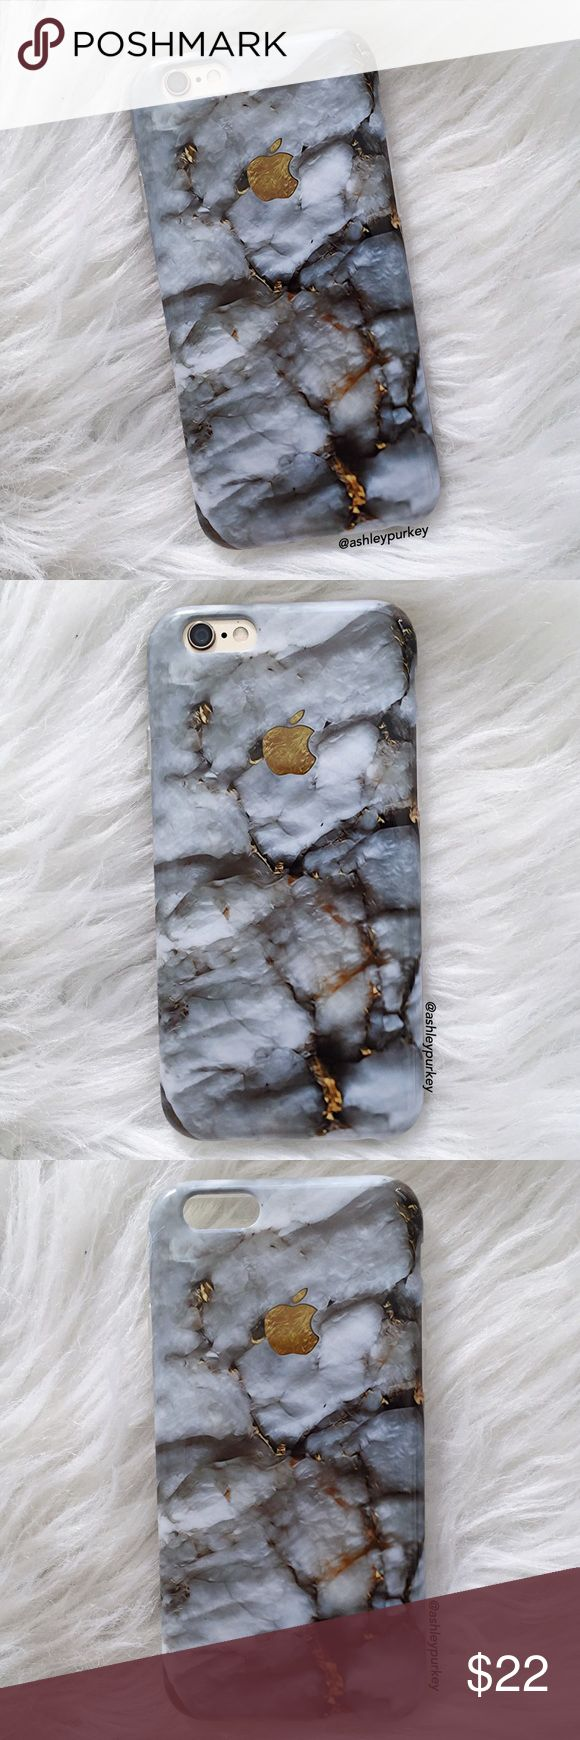 """gray and gold marble apple iPhone 6 7 • Plus case •sizes:  iPhone 7 (4.7"""") iPhone 6 Plus (5.5"""") iPhone 7 Plus (5.5"""")  •flexible silicone   •phone not included   •no trades    *please make sure you purchase the correct size case. i am not responsible if you purchase the wrong size  item #: 65 B-Long Boutique  Accessories Phone Cases"""